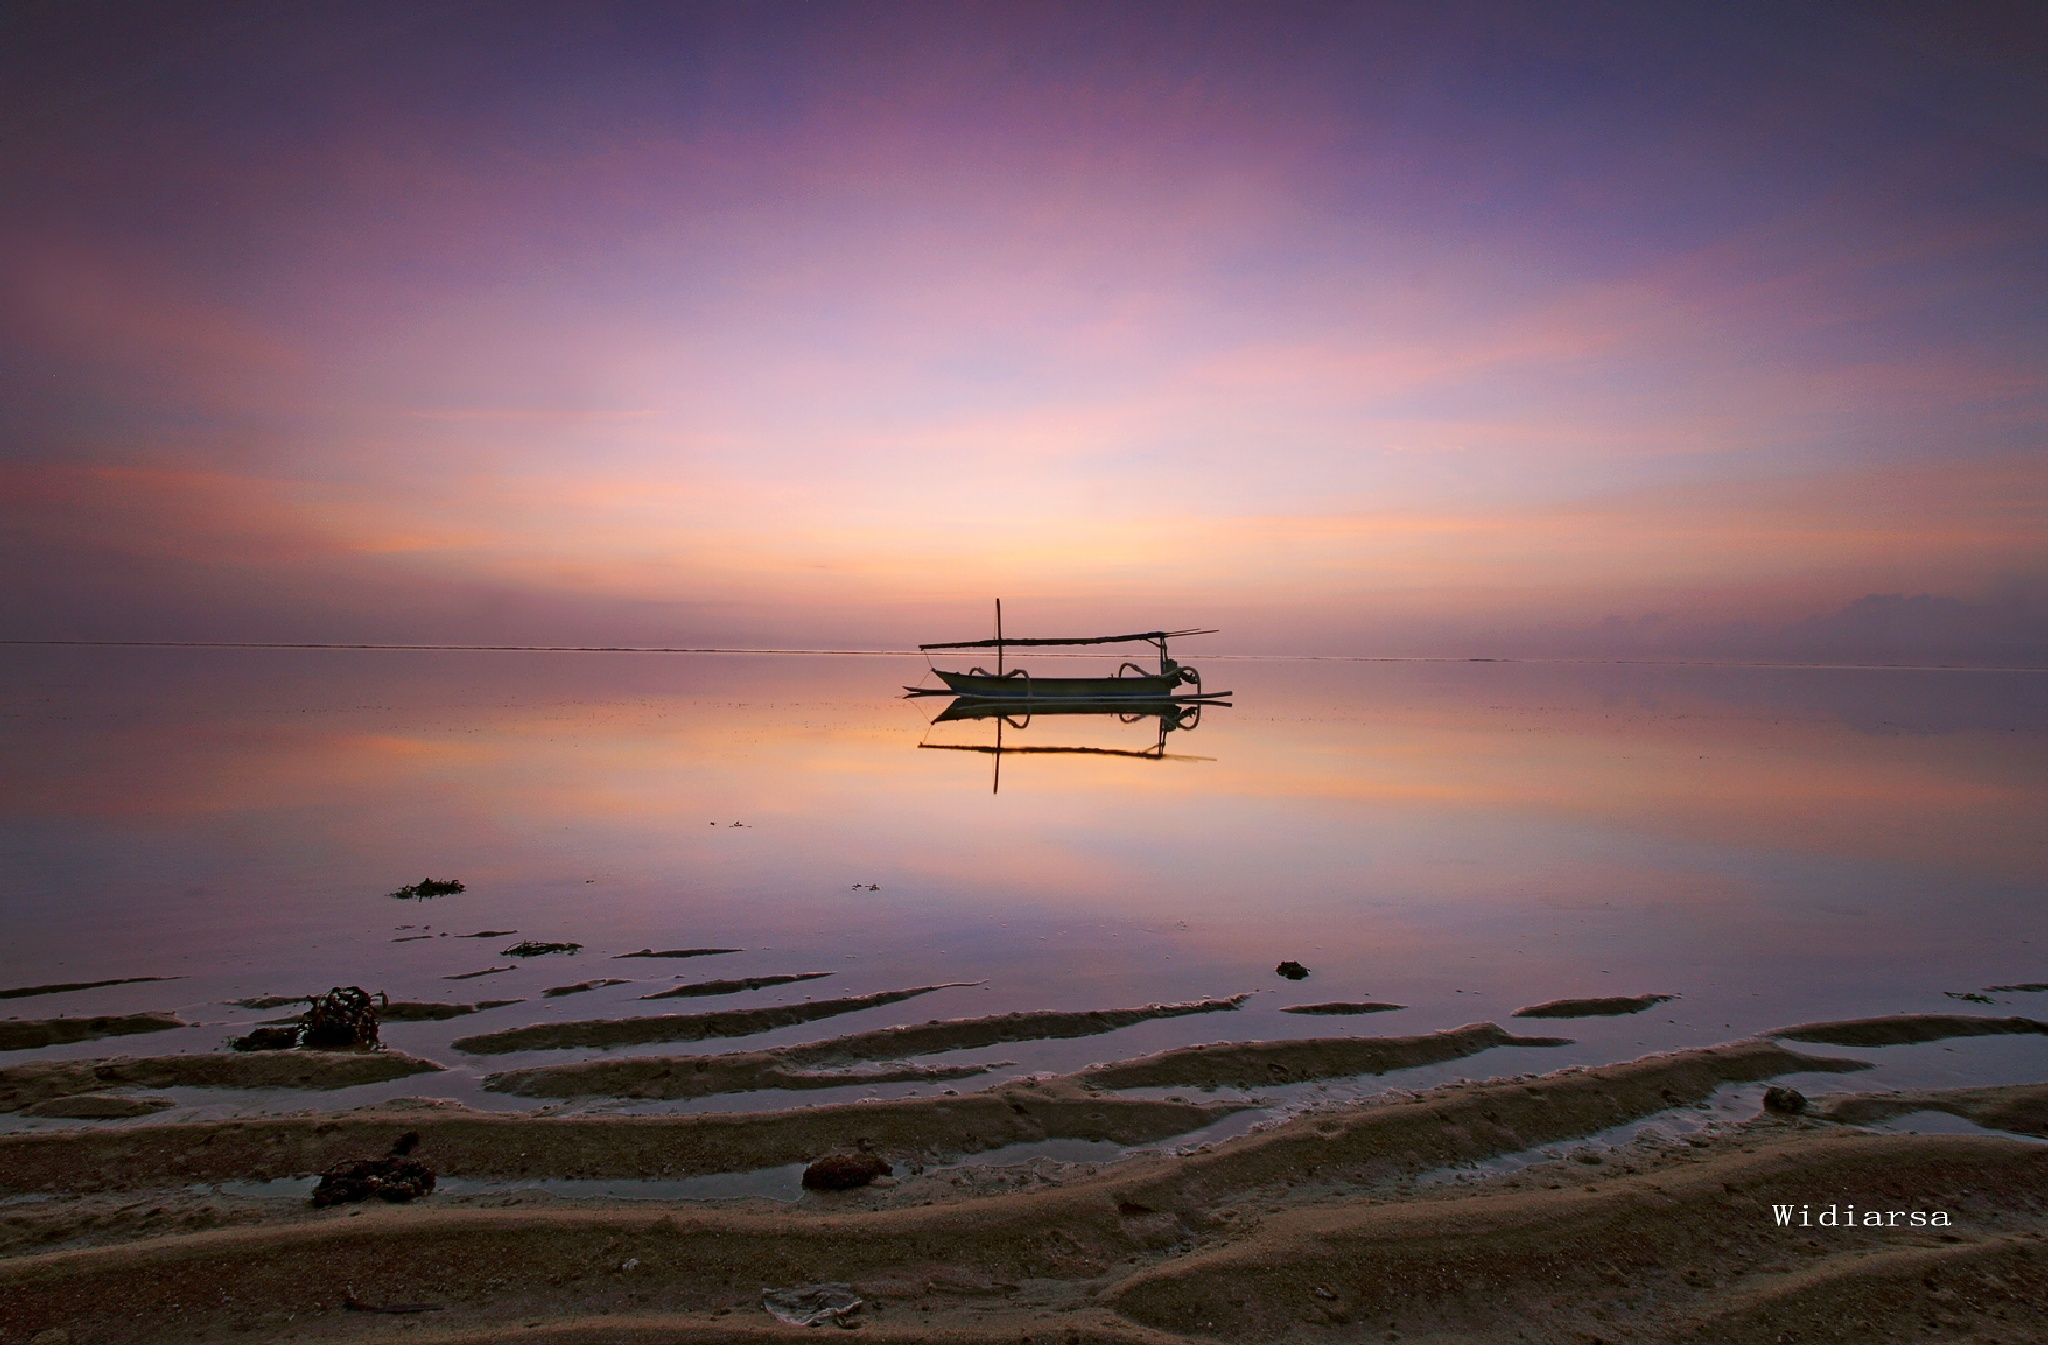 Waiting for Sunrise by Gede Widiarsa